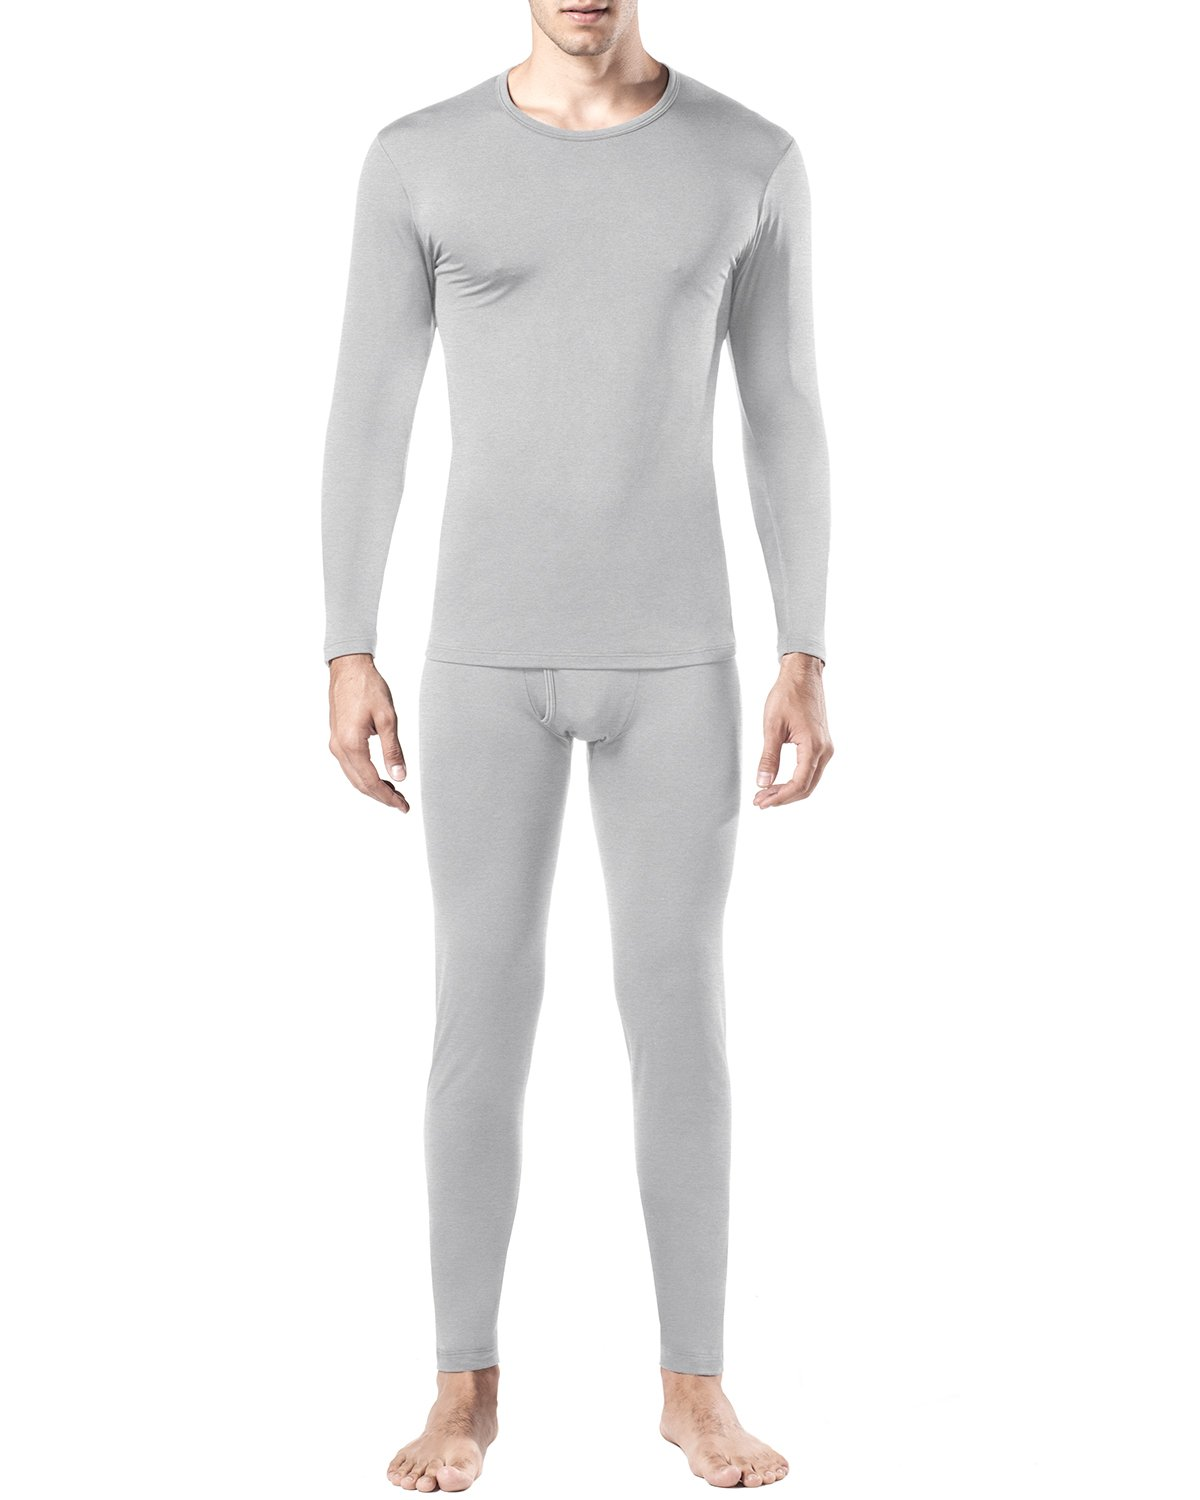 Which thermal underwear is better